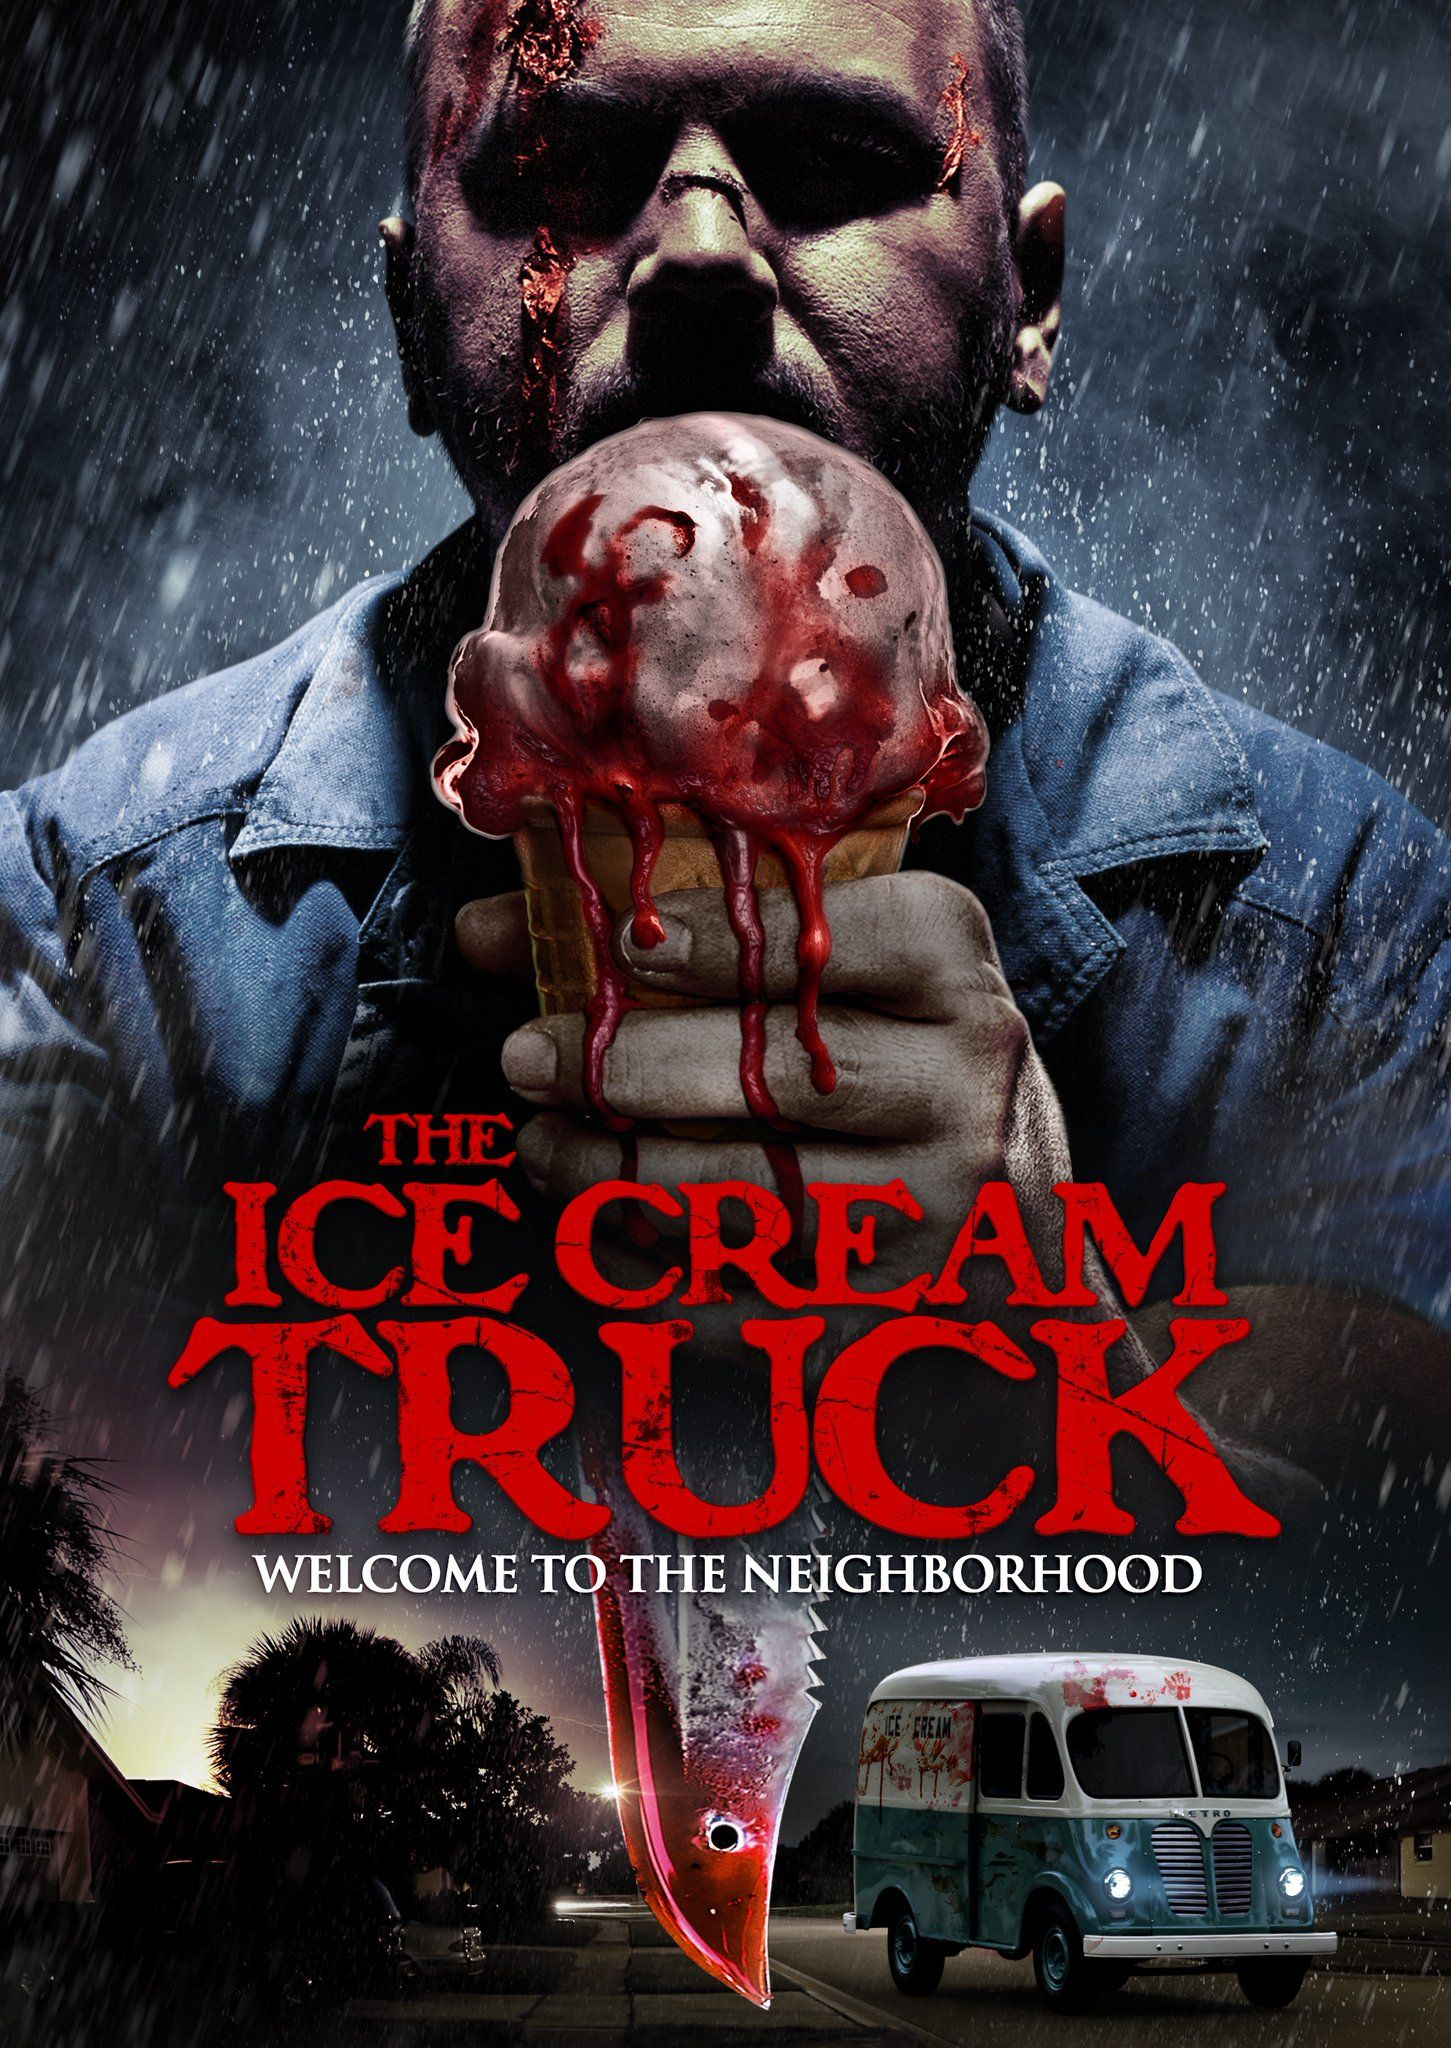 The Ice Cream Truck | Teaser, Movie and Scary movies